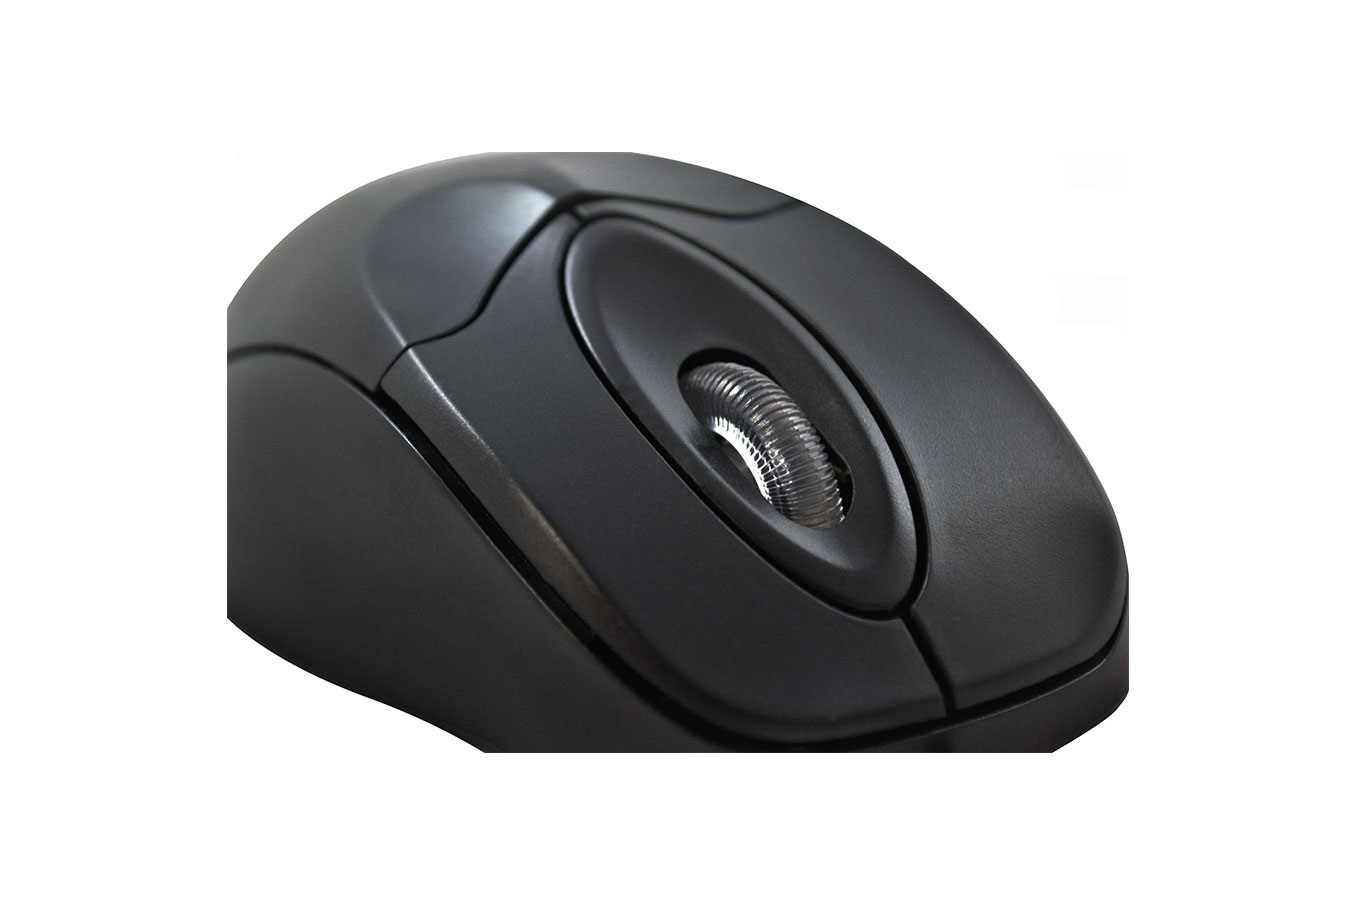 Mouse Ps2  Preto Zl-76 Hardline